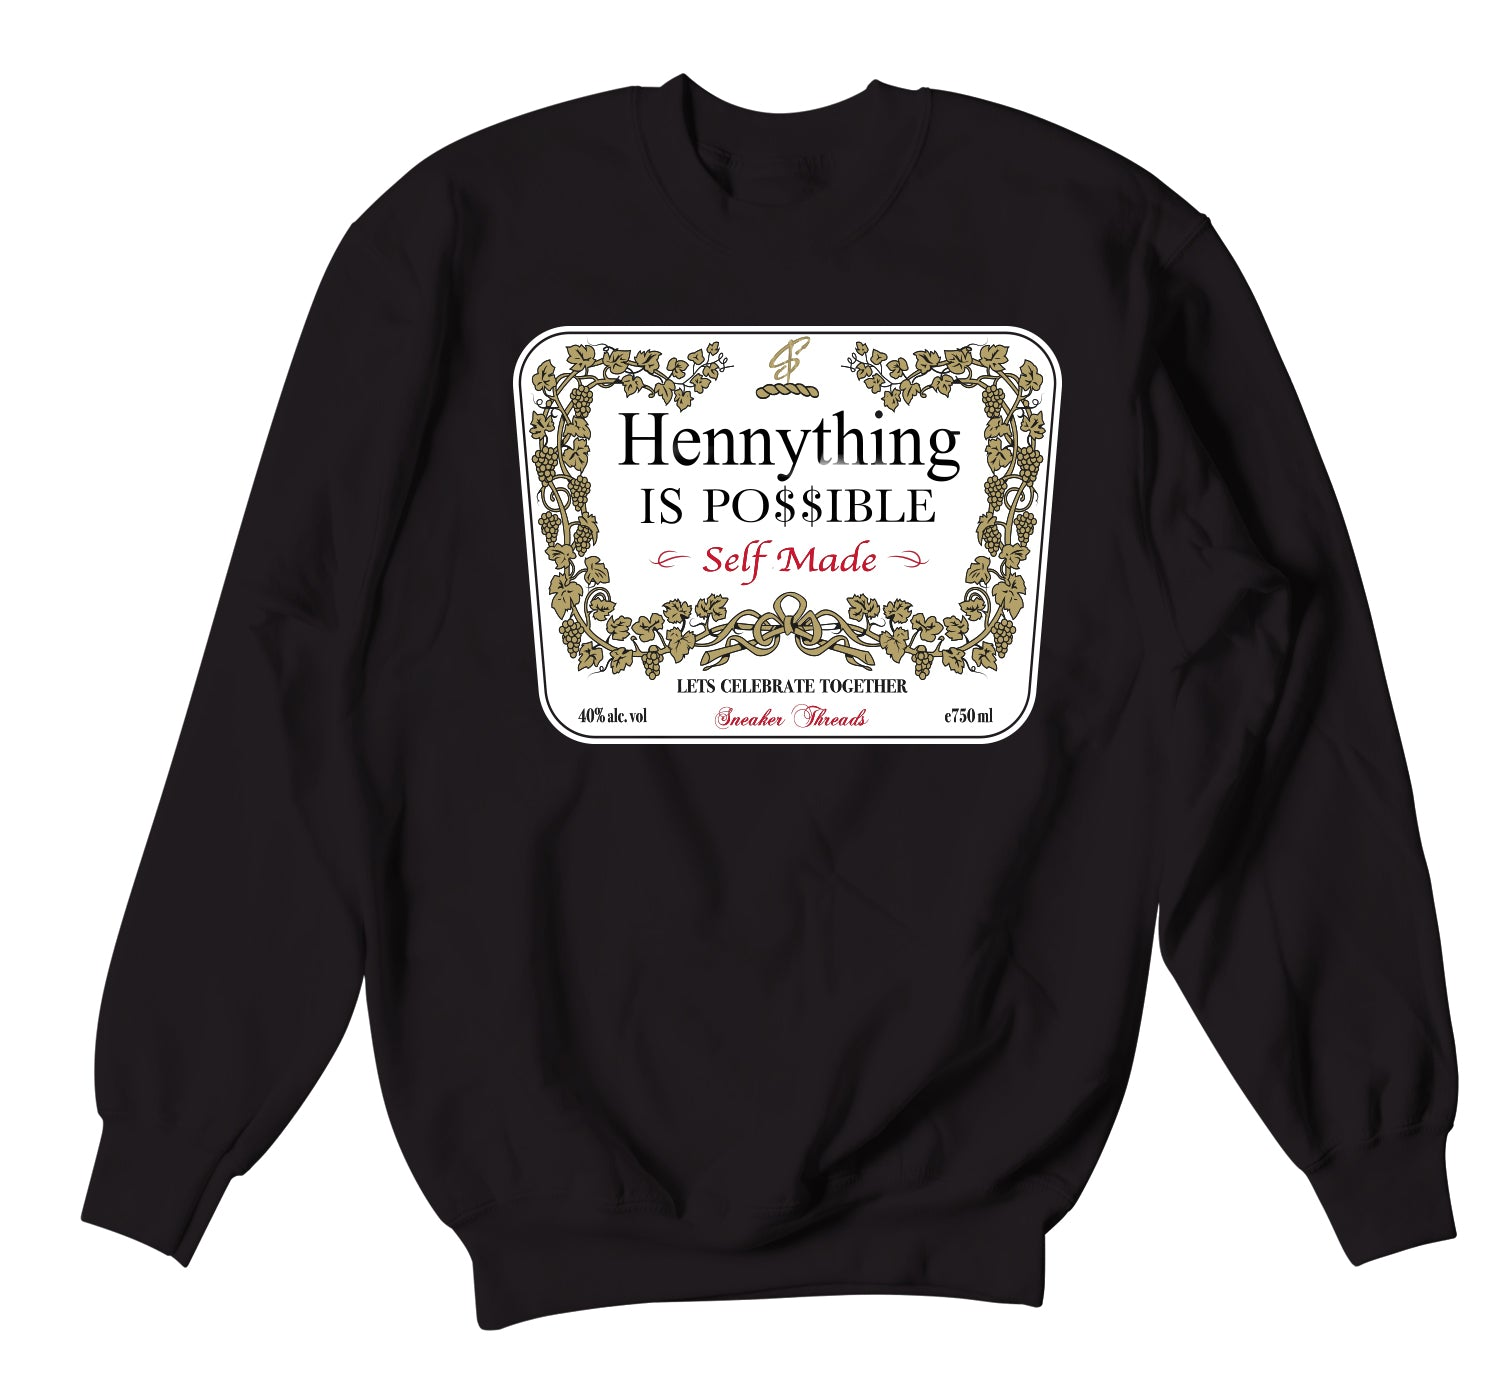 Jordan 3 Red Cement Hennything Sweater